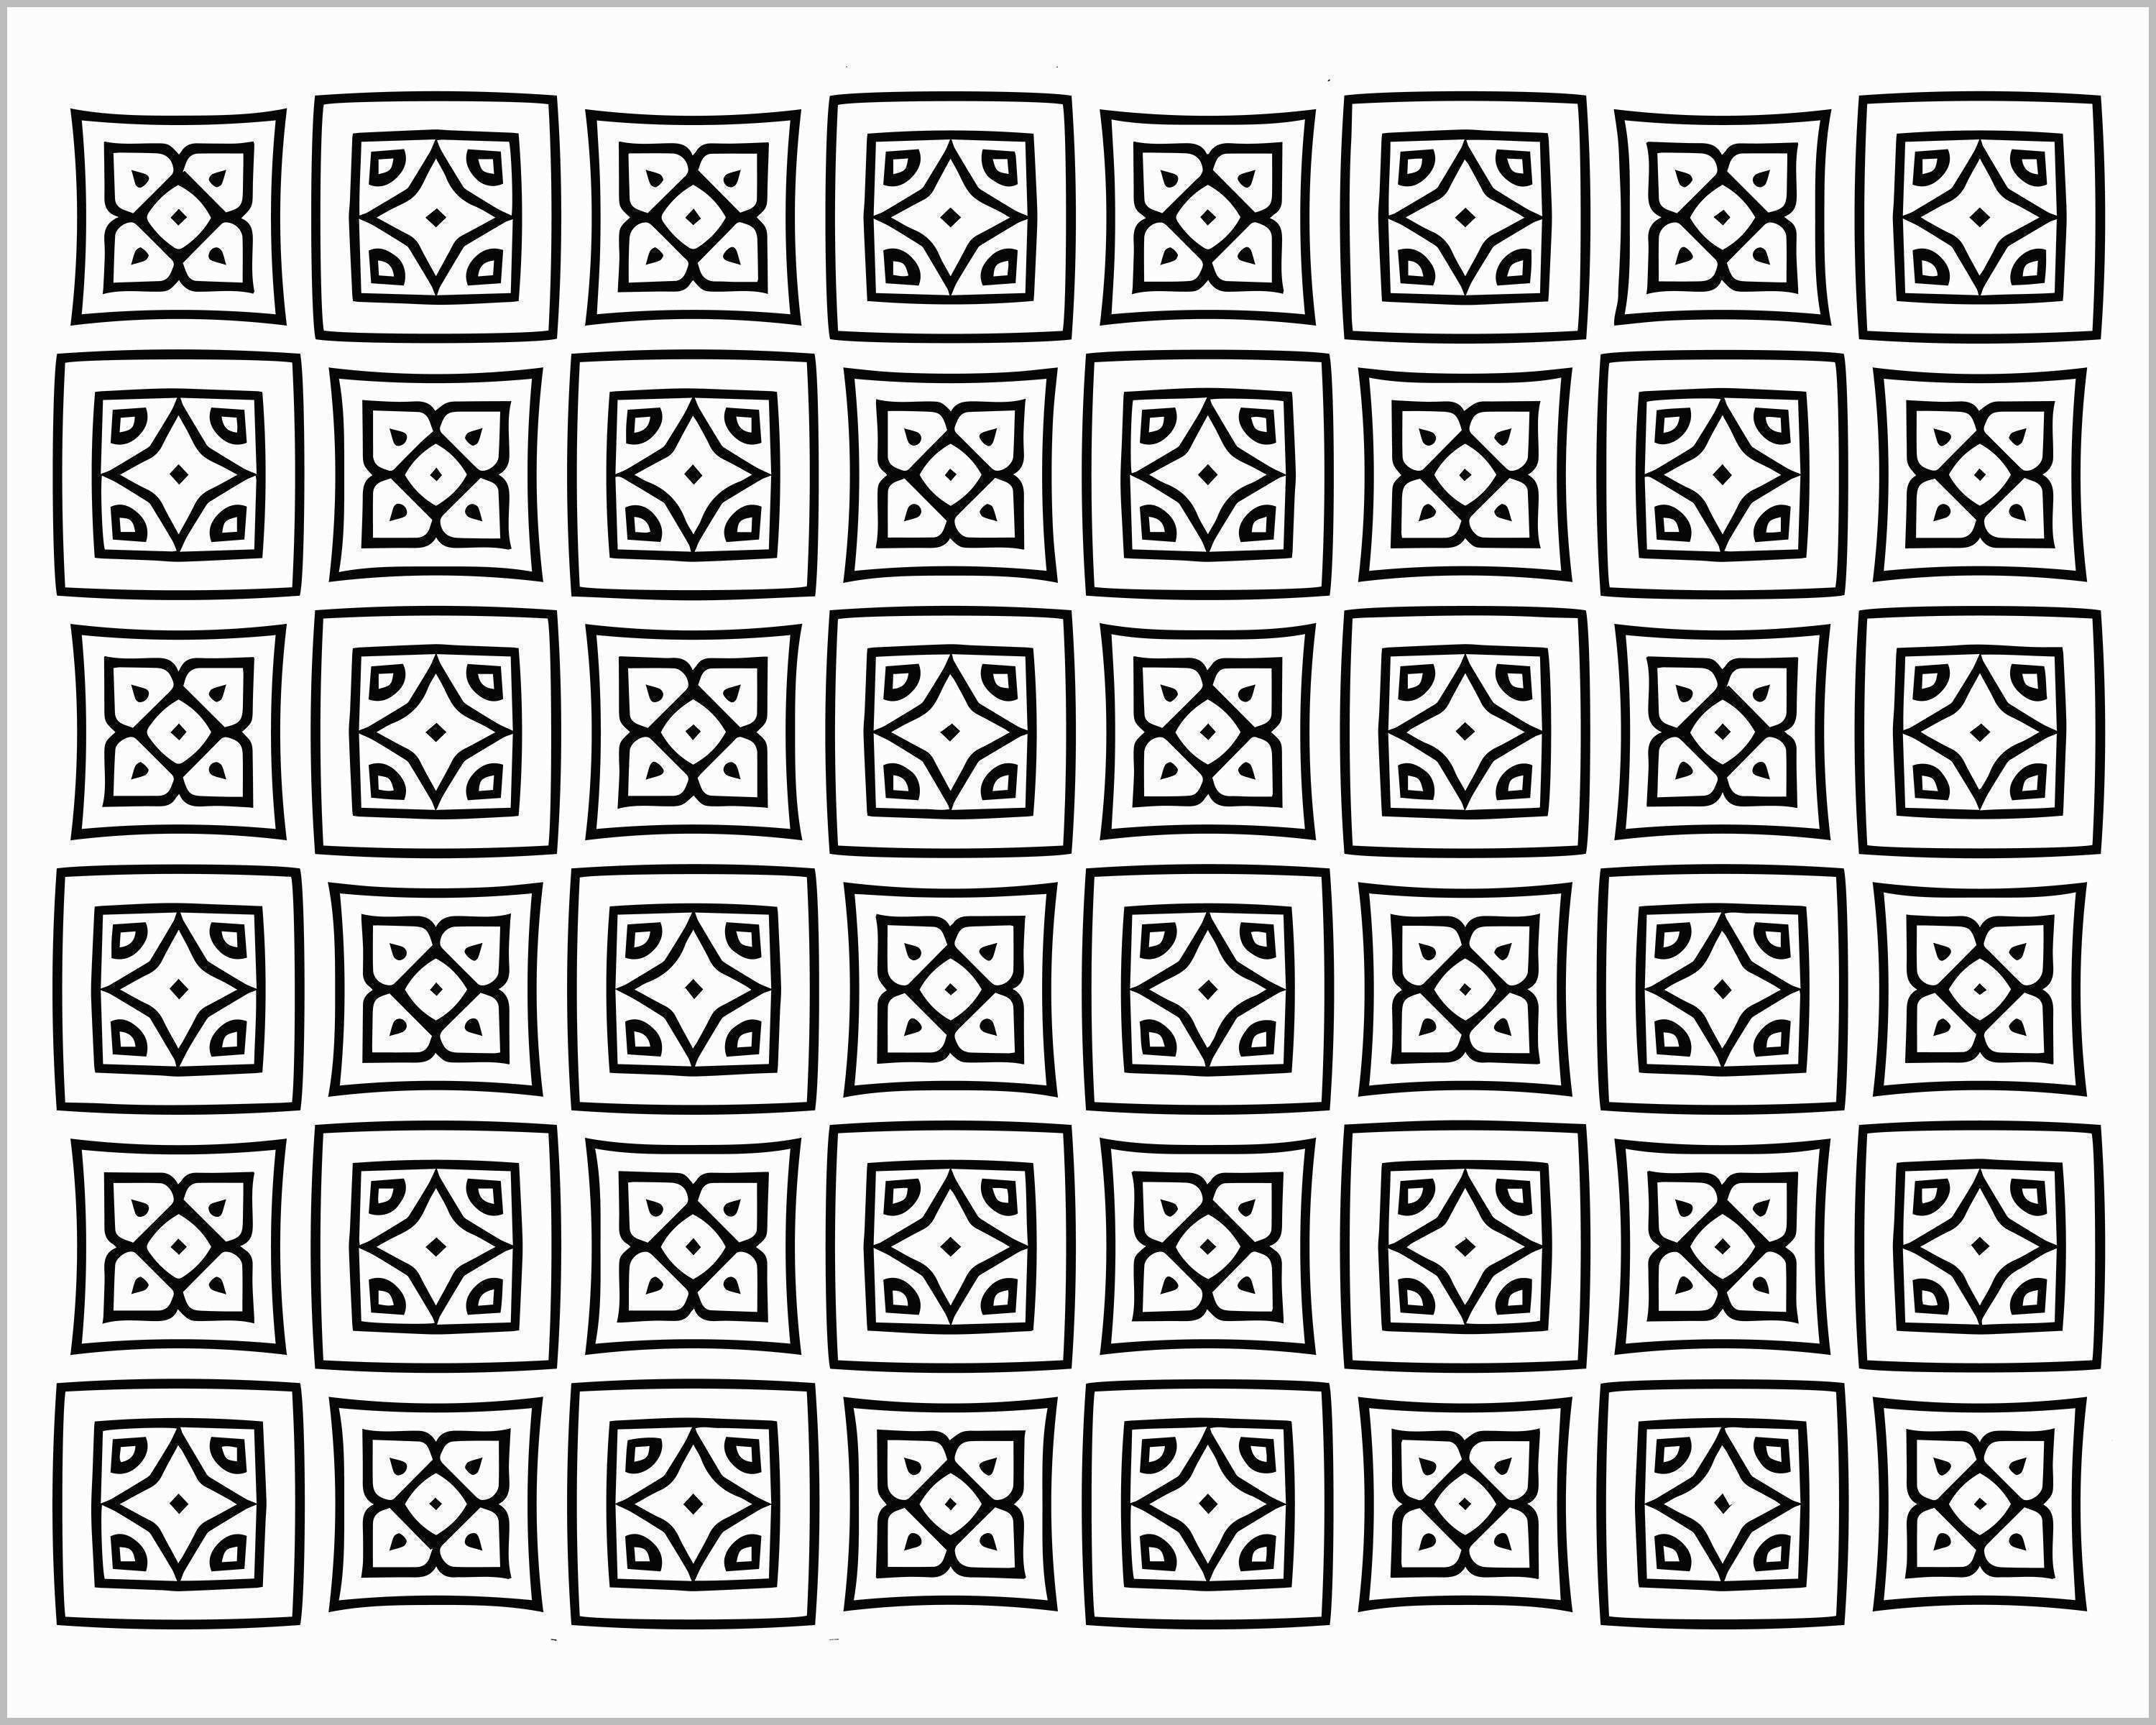 Quilt Blocks Coloring Pages to Print Awesome Free Square Quilt